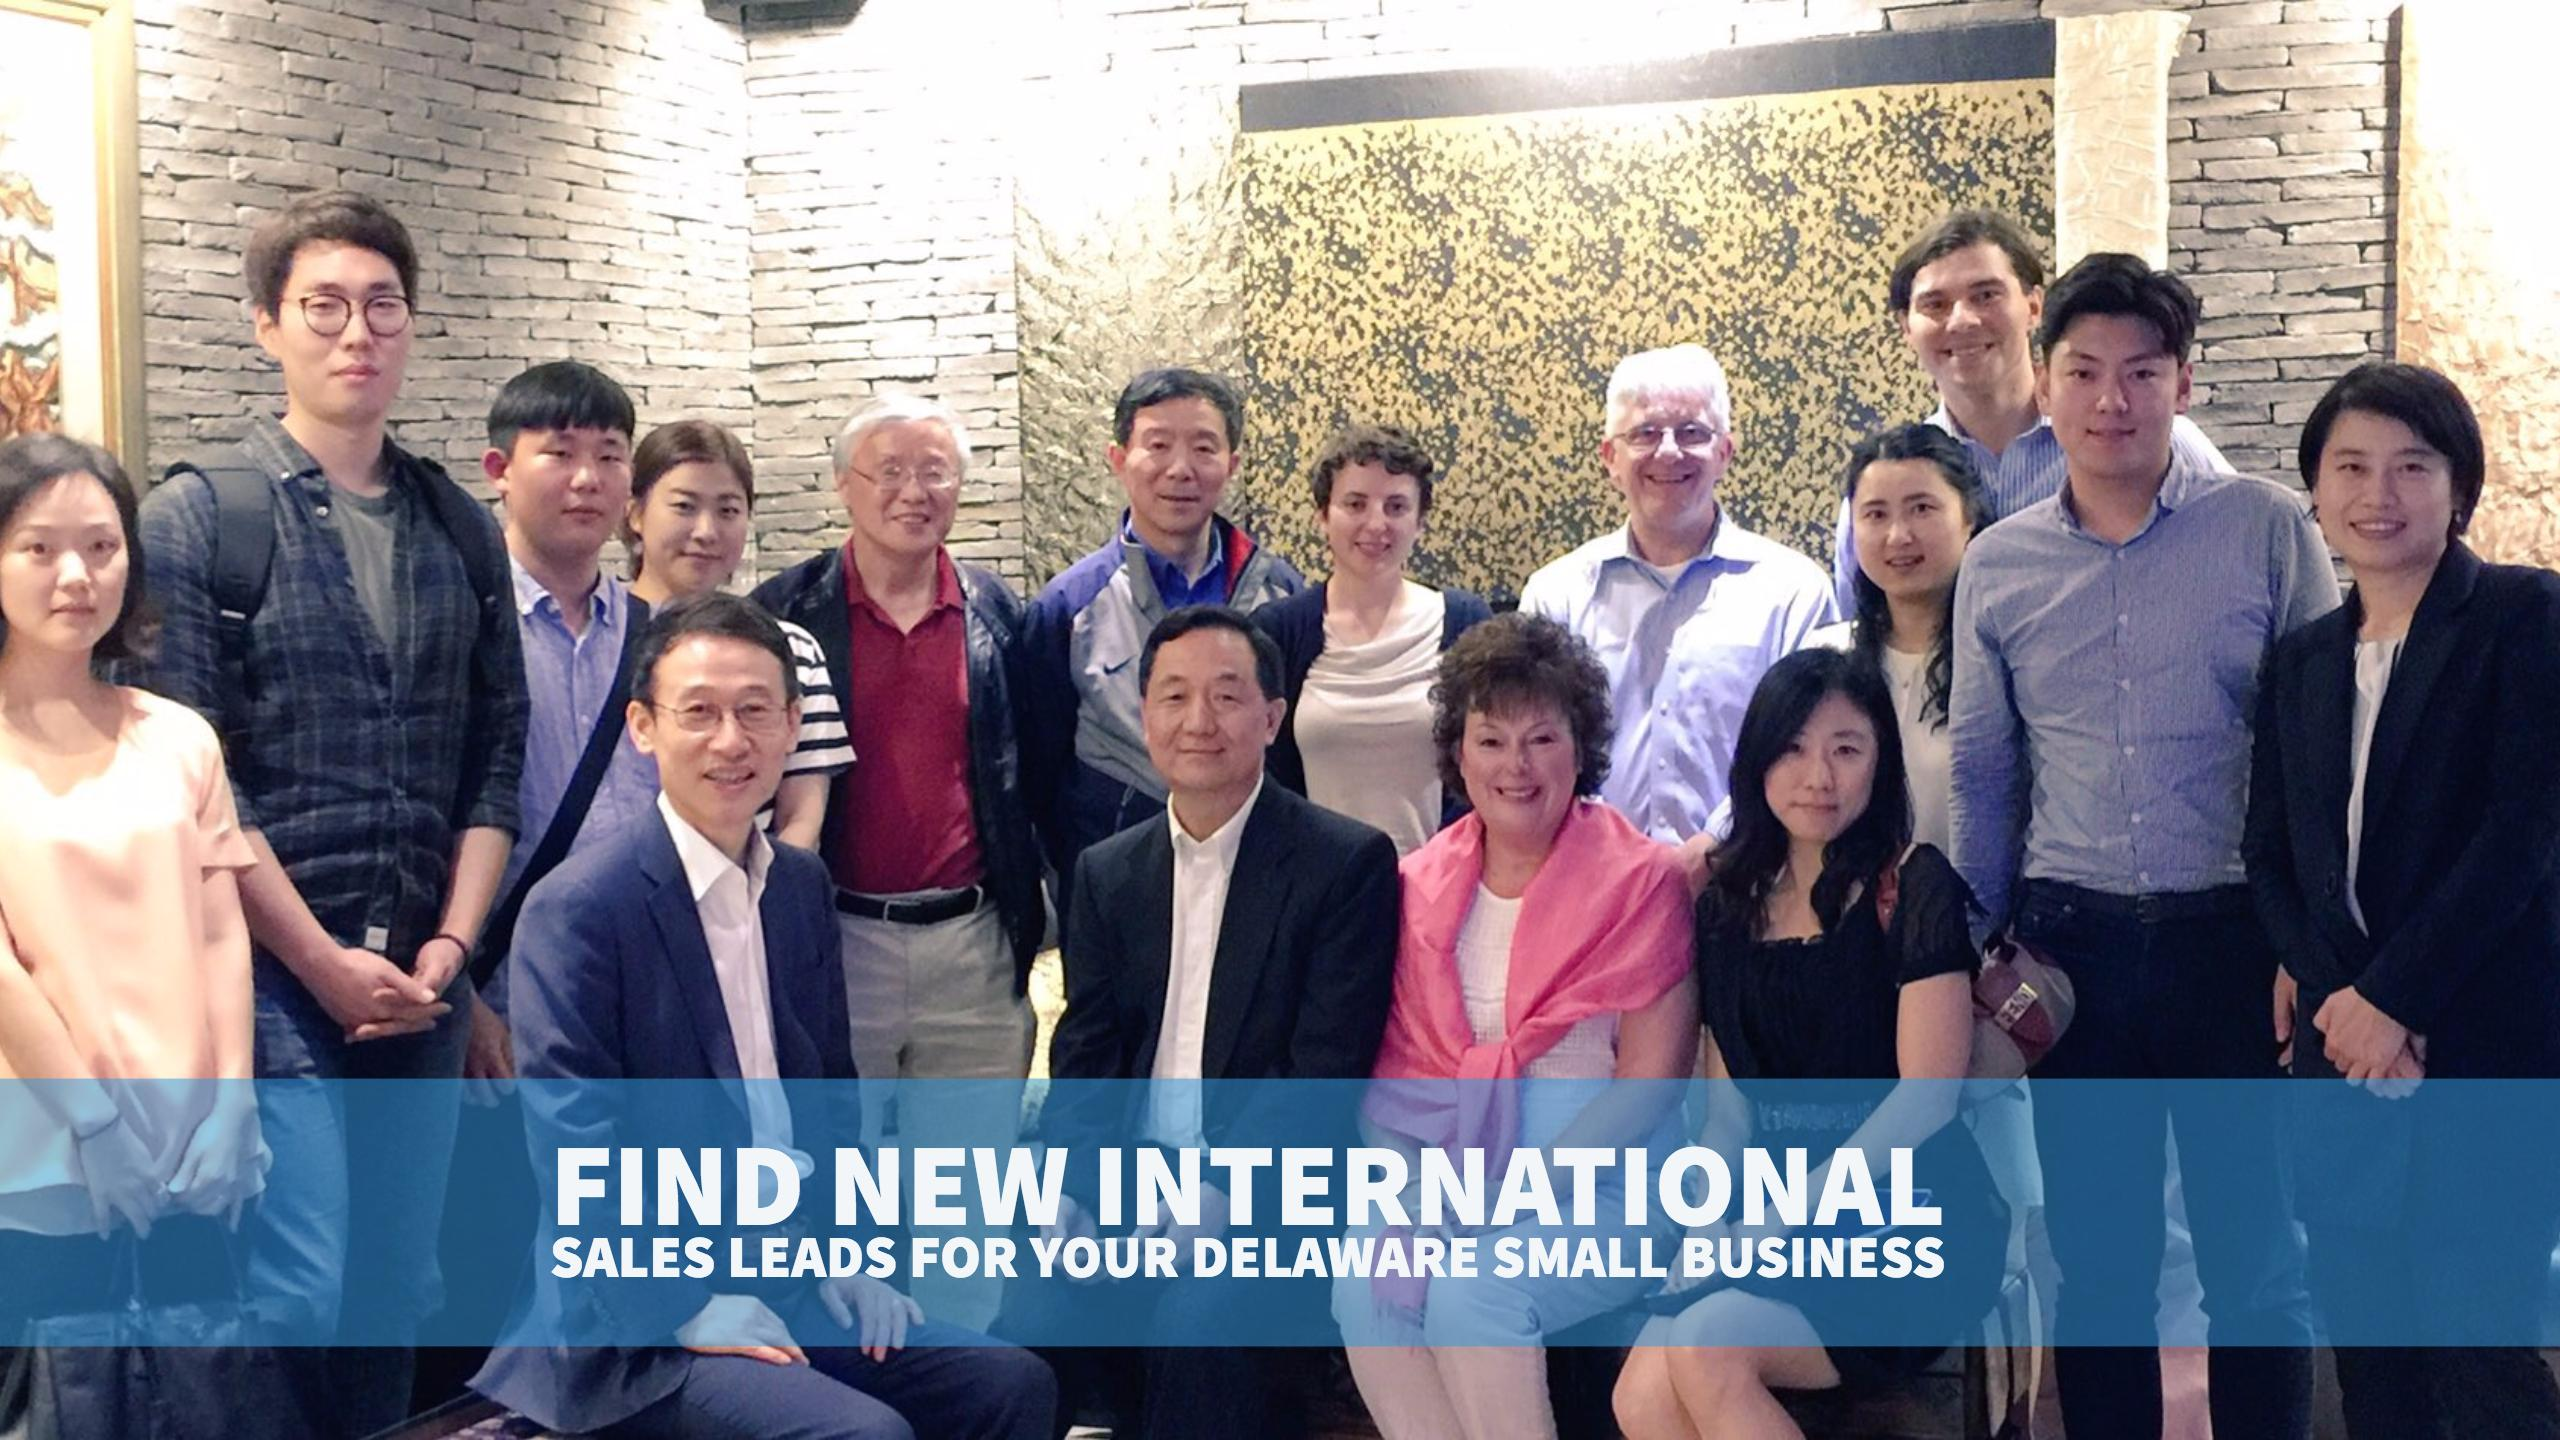 Find new international sales leads for your Delaware small business